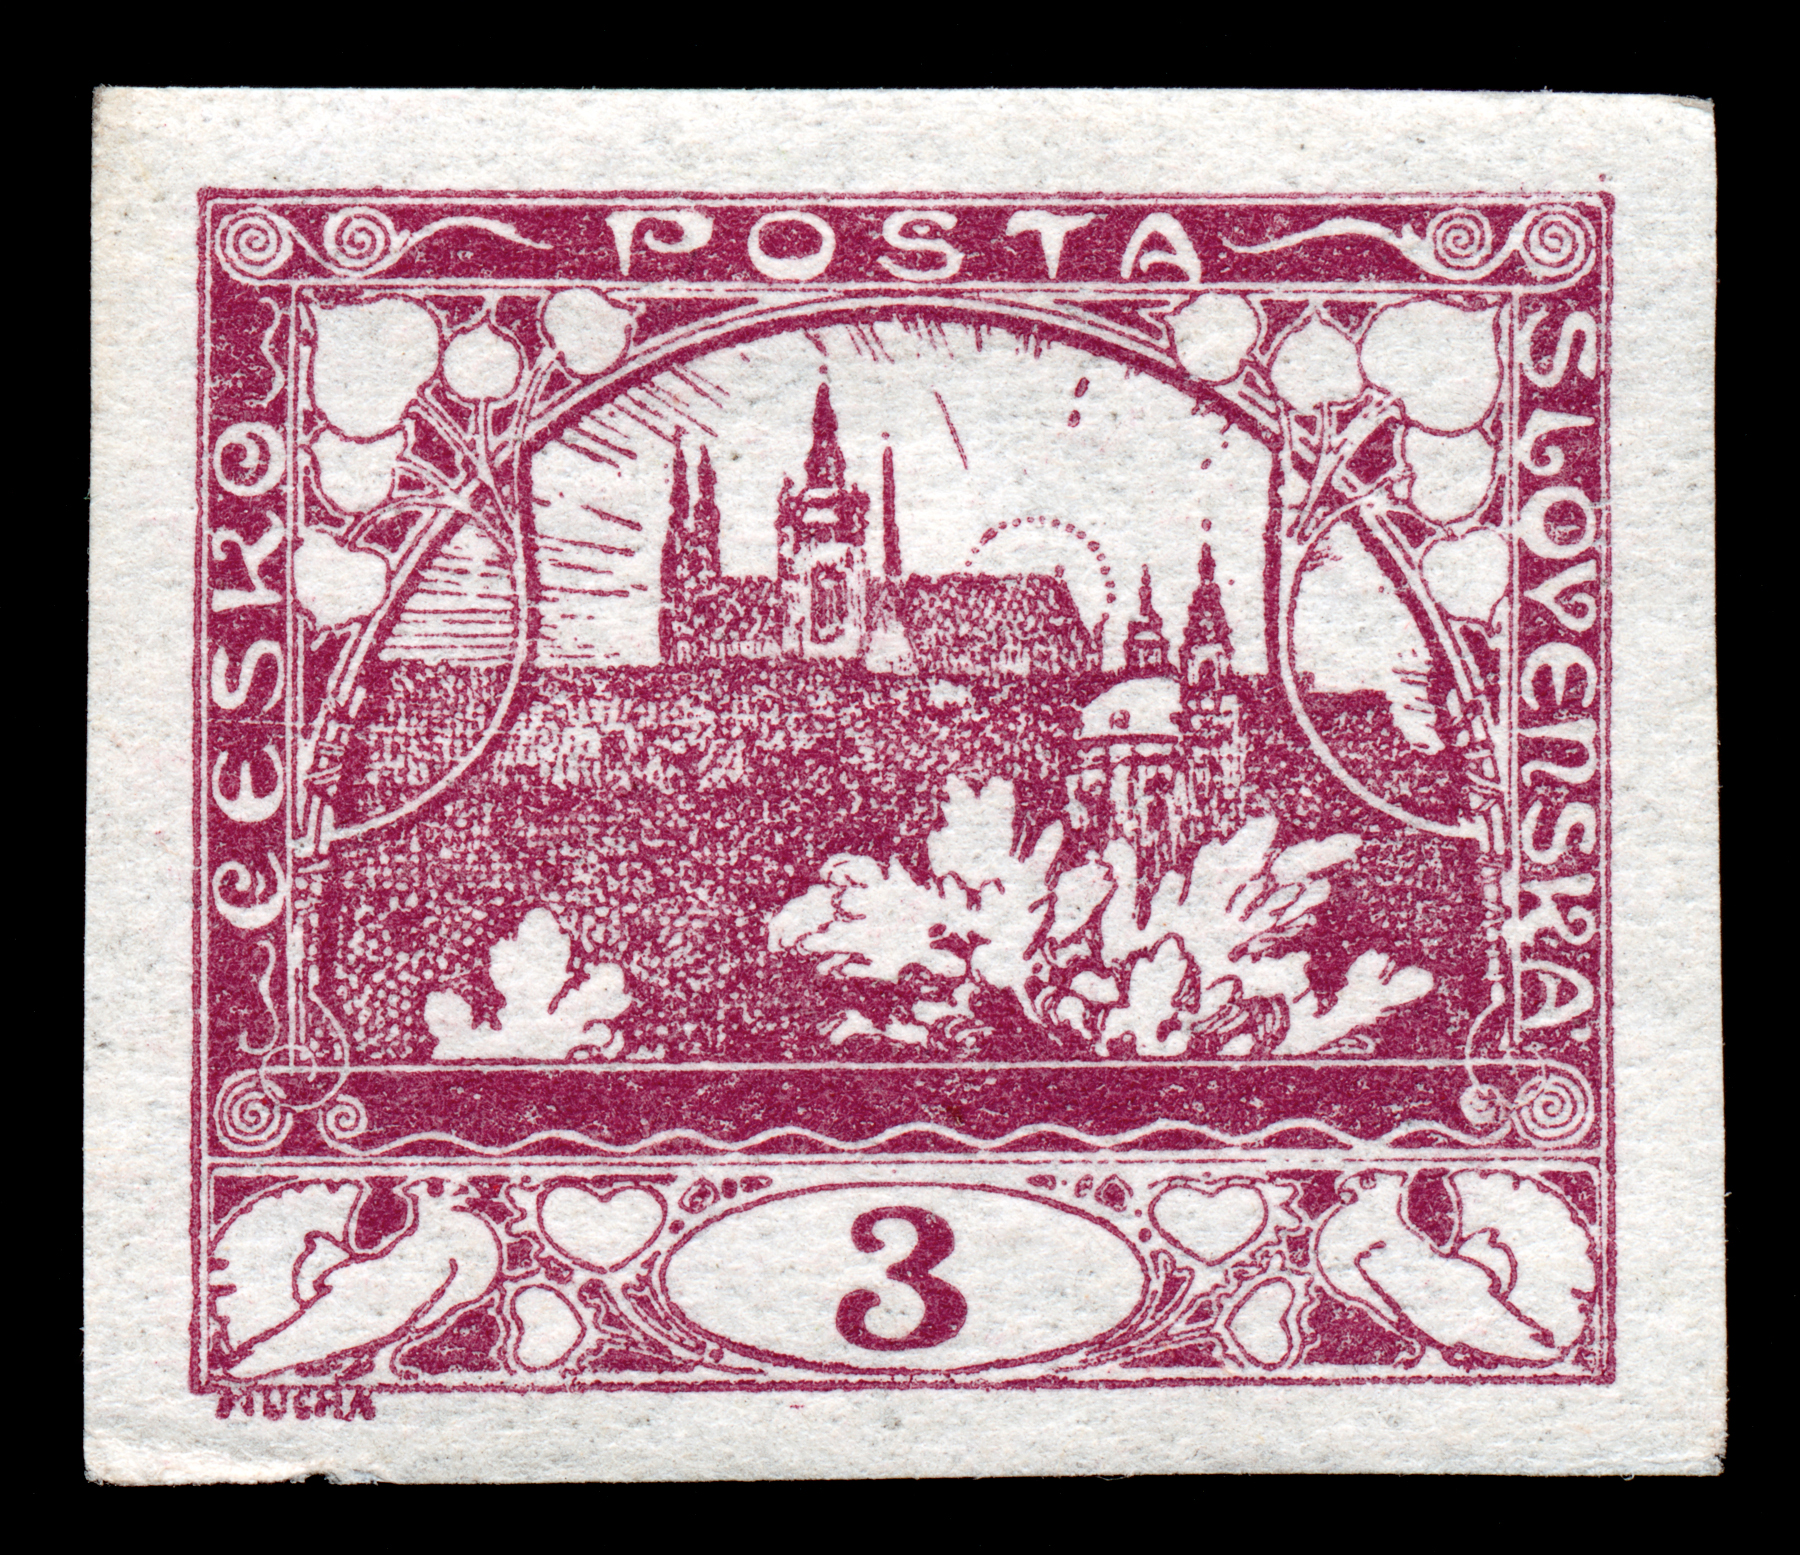 Violet hradcany castle stamp photo